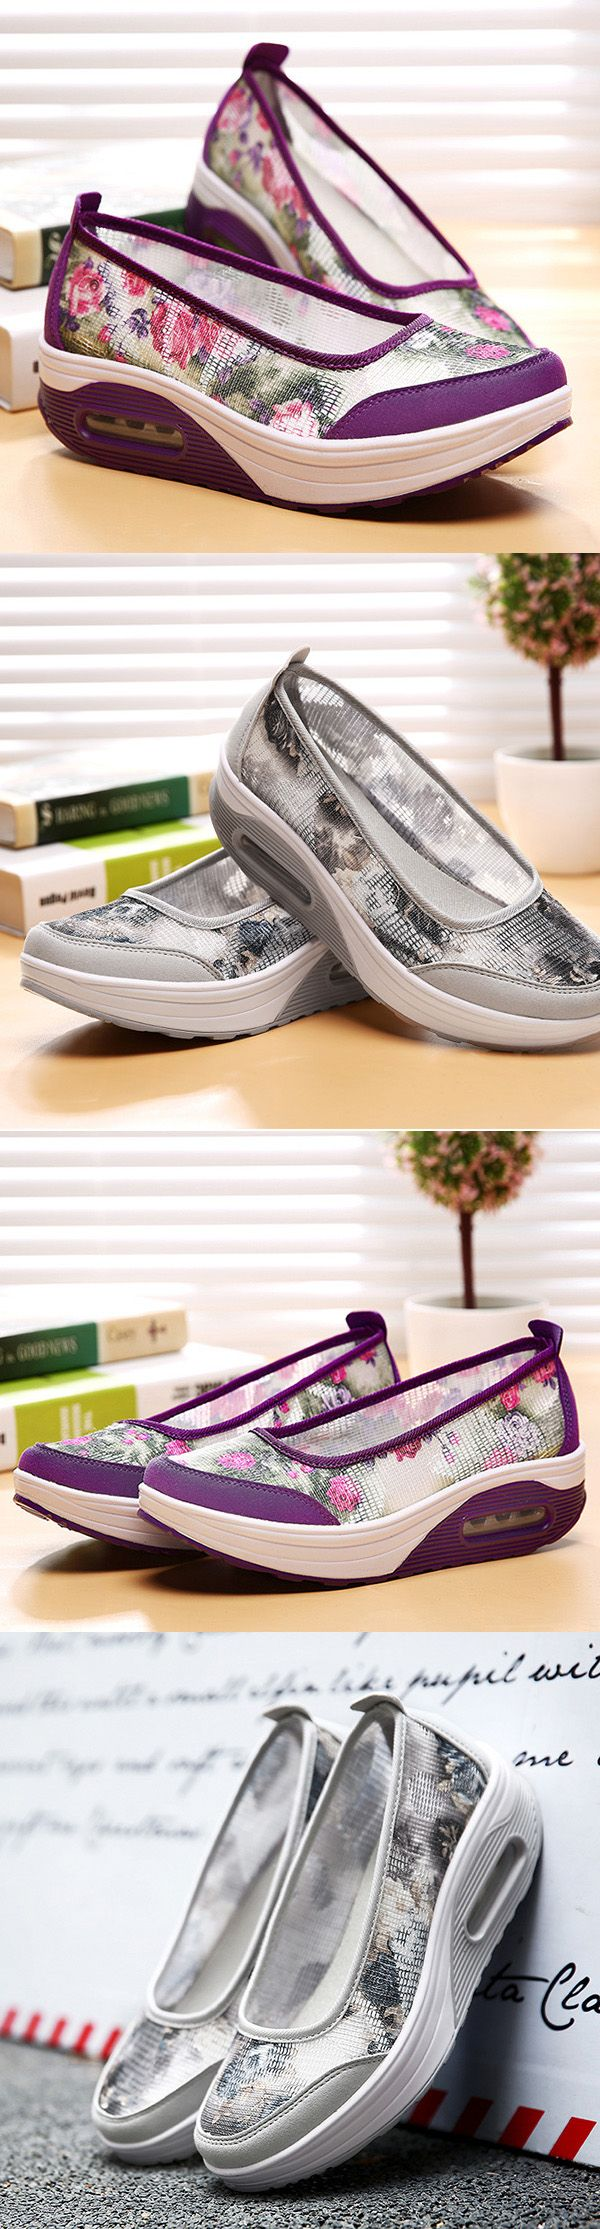 US$21.21  Mesh Breathable Flower Platform Rocker Sole Shoes